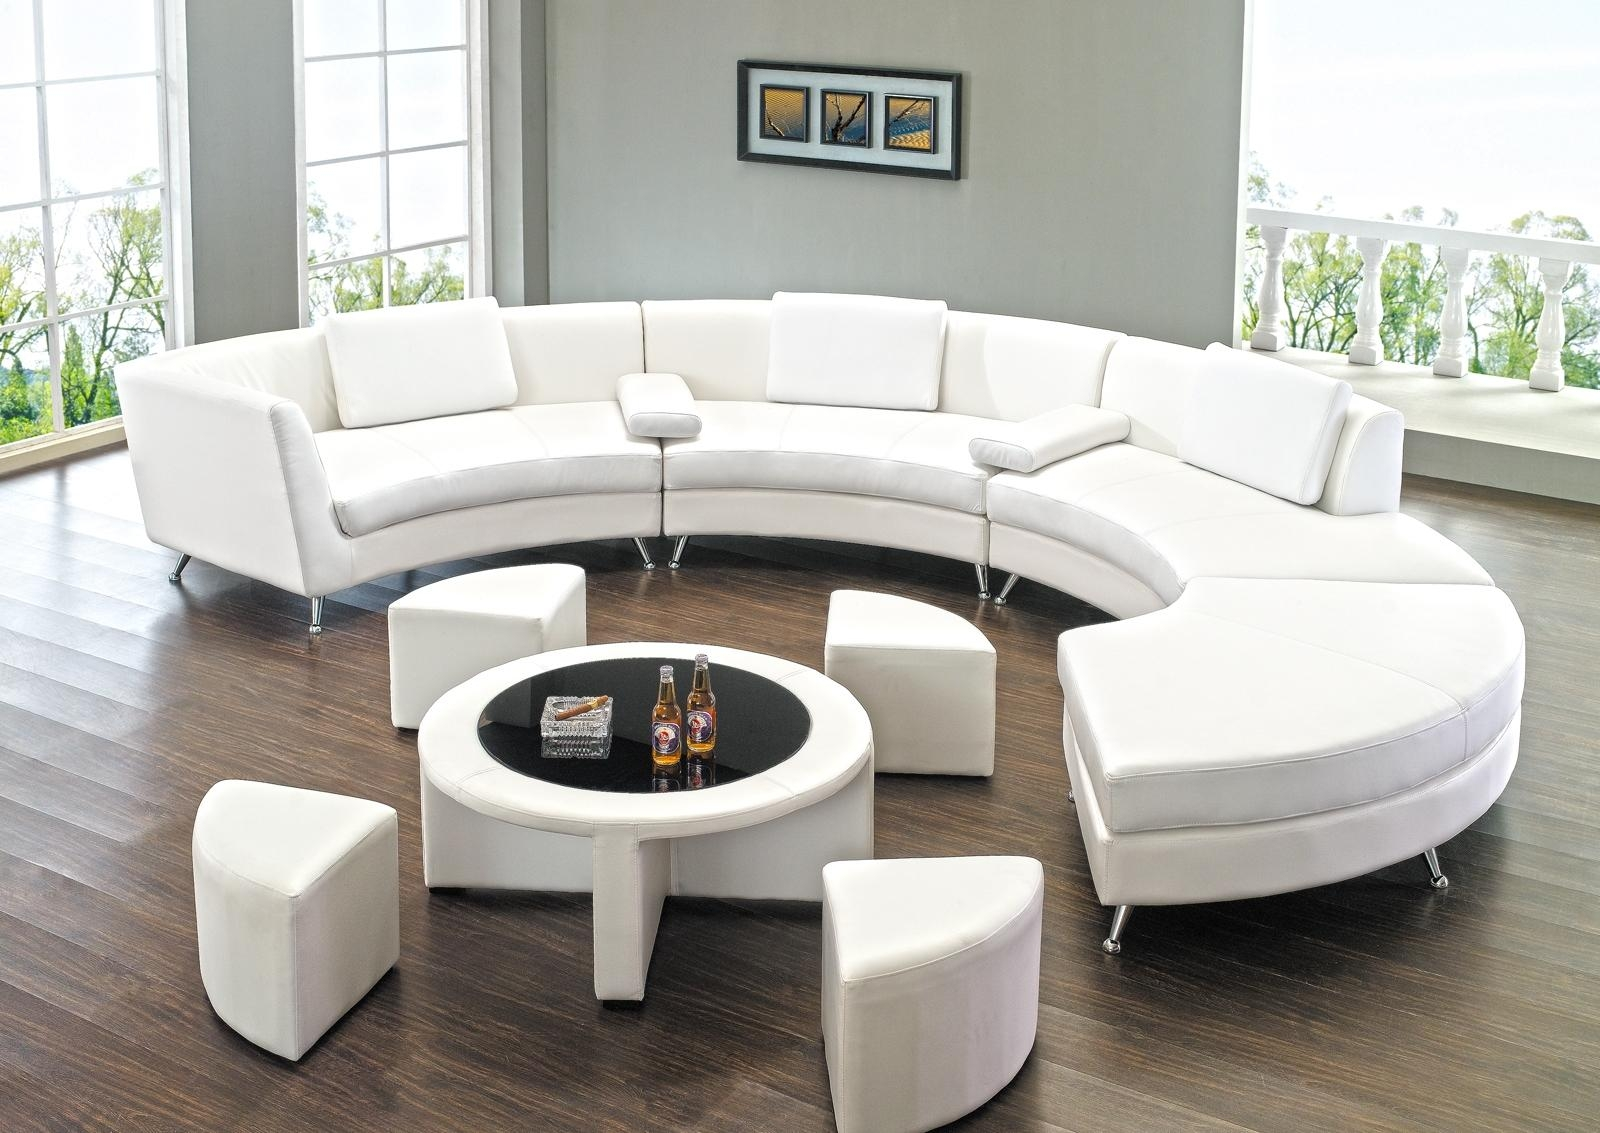 Round Sectional Sofa Leather | Tehranmix Decoration For Wide Sectional Sofa (View 10 of 20)